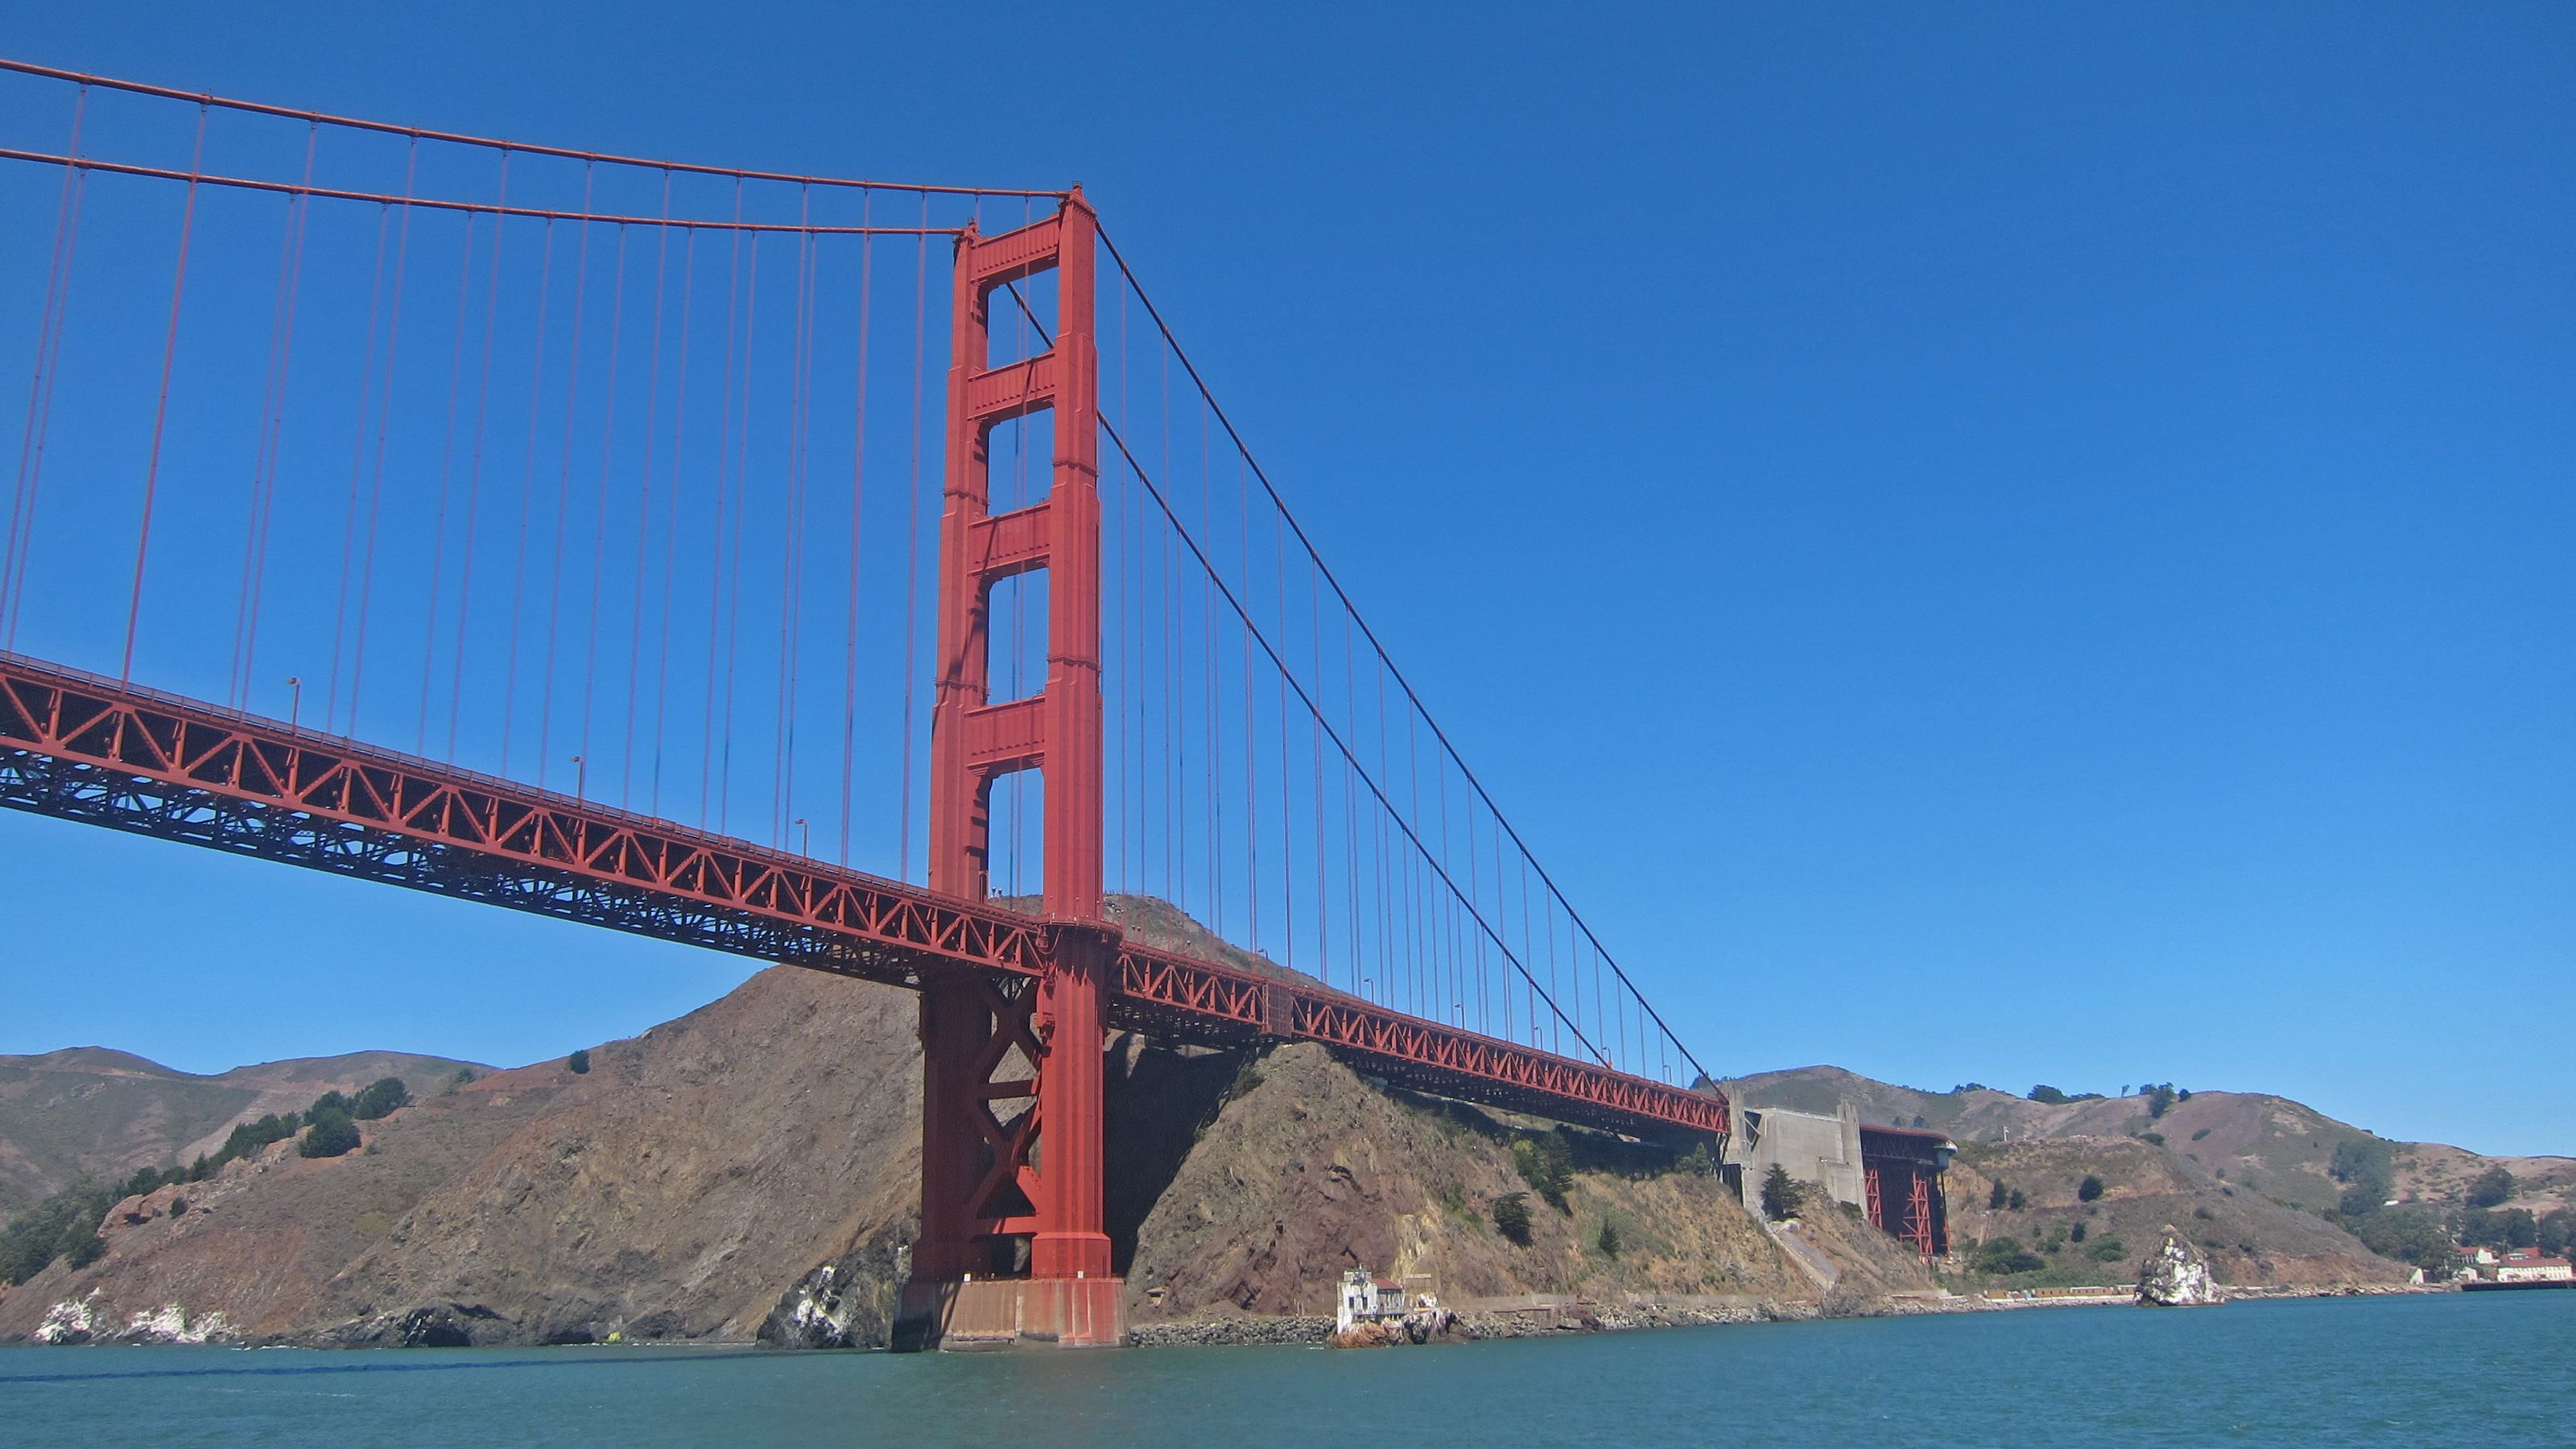 View of the Golden Gate Bridge from tour boat